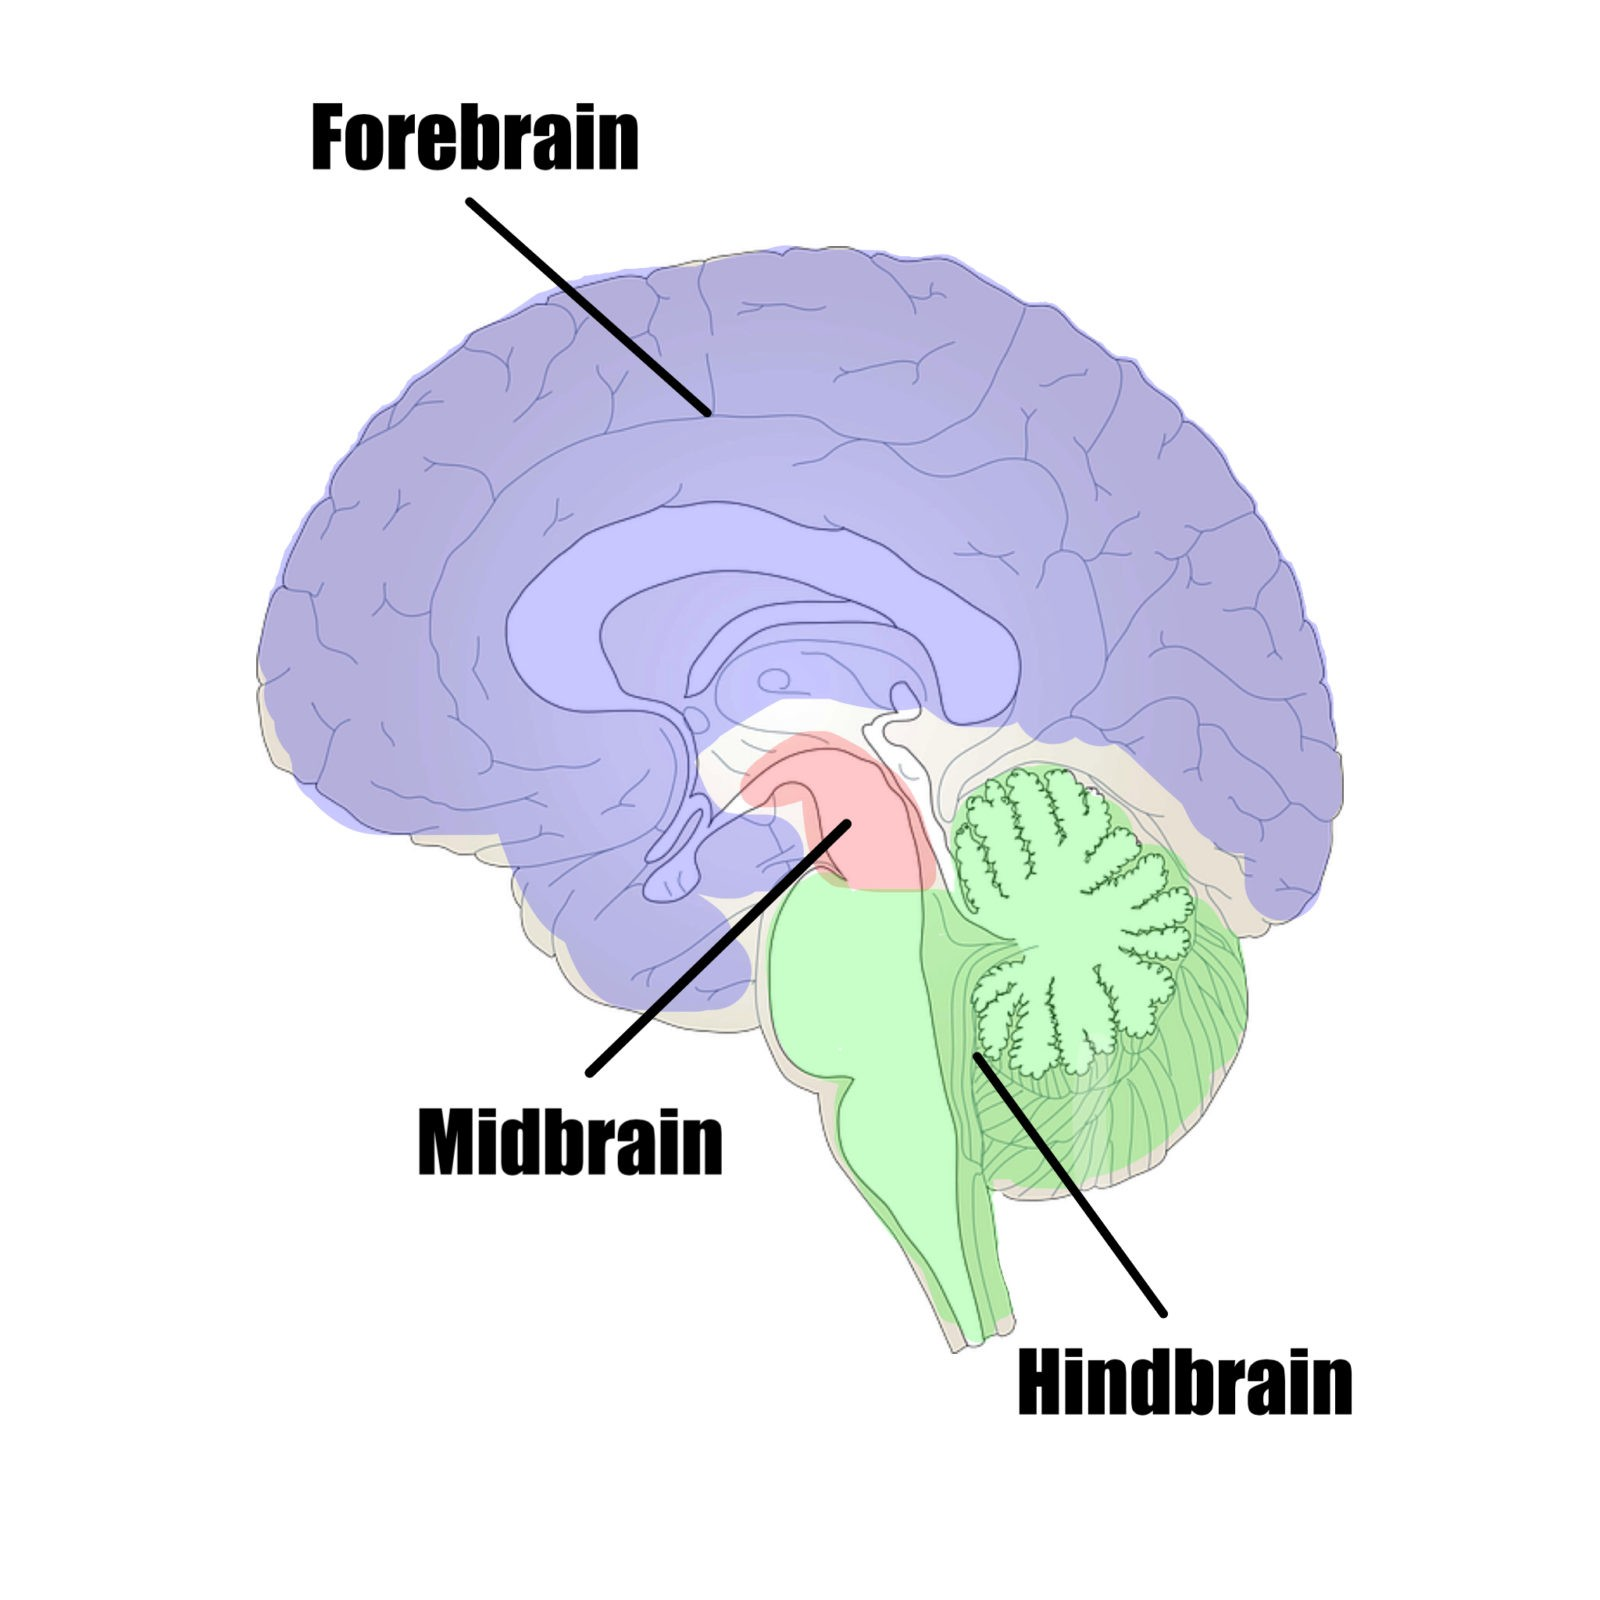 Brain Brain the mass of nerve tissue in the anterior end of an organism The brain integrates sensory information and directs motor responses in higher vertebrates